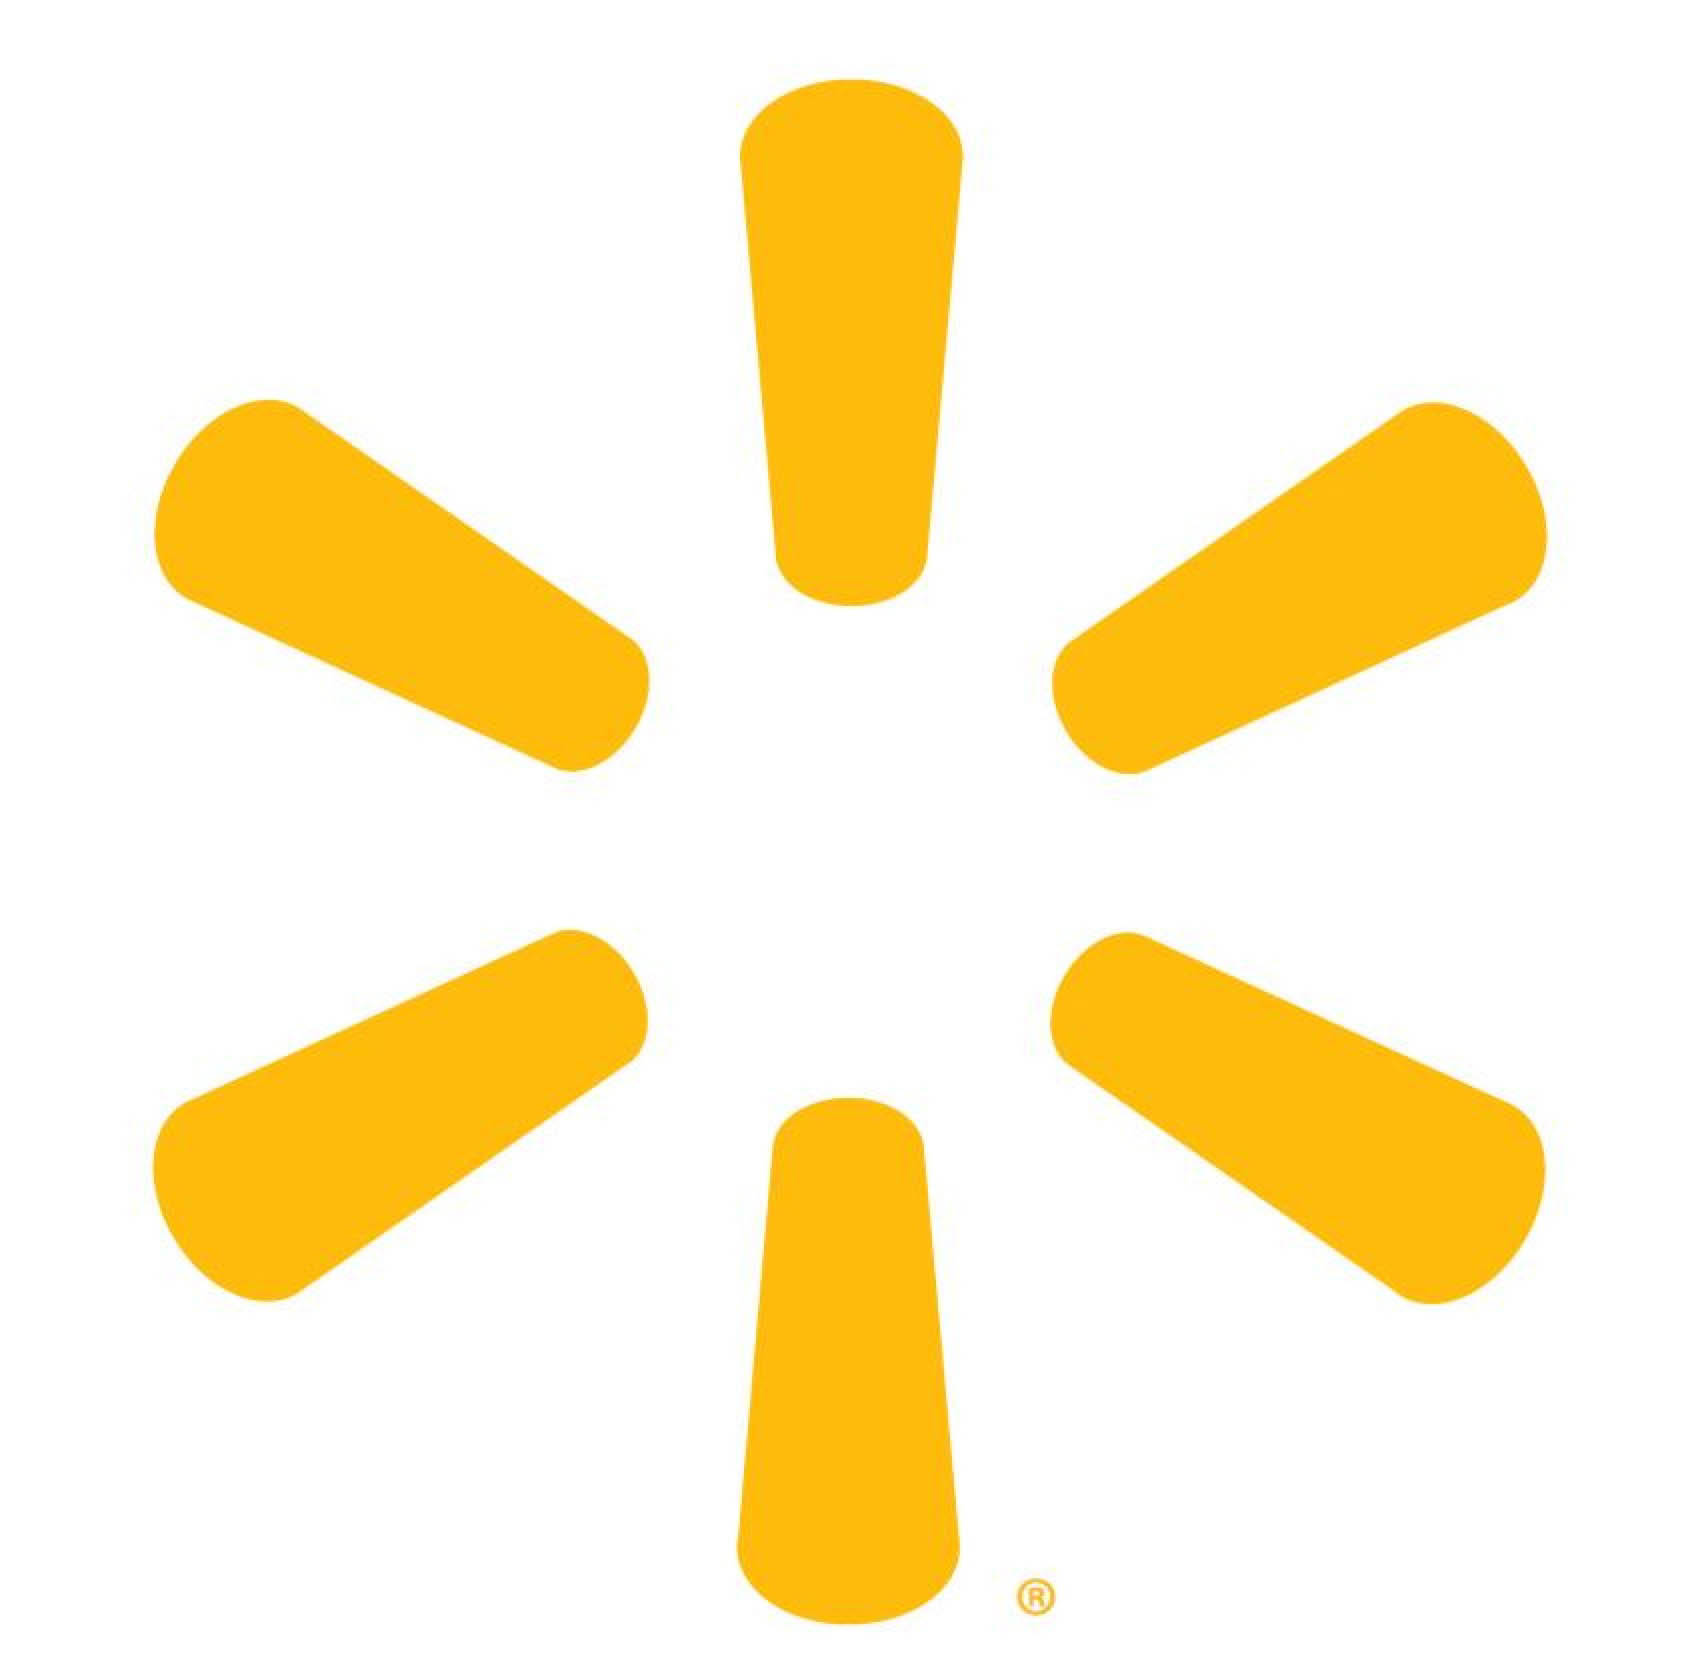 walmart logo and tagline